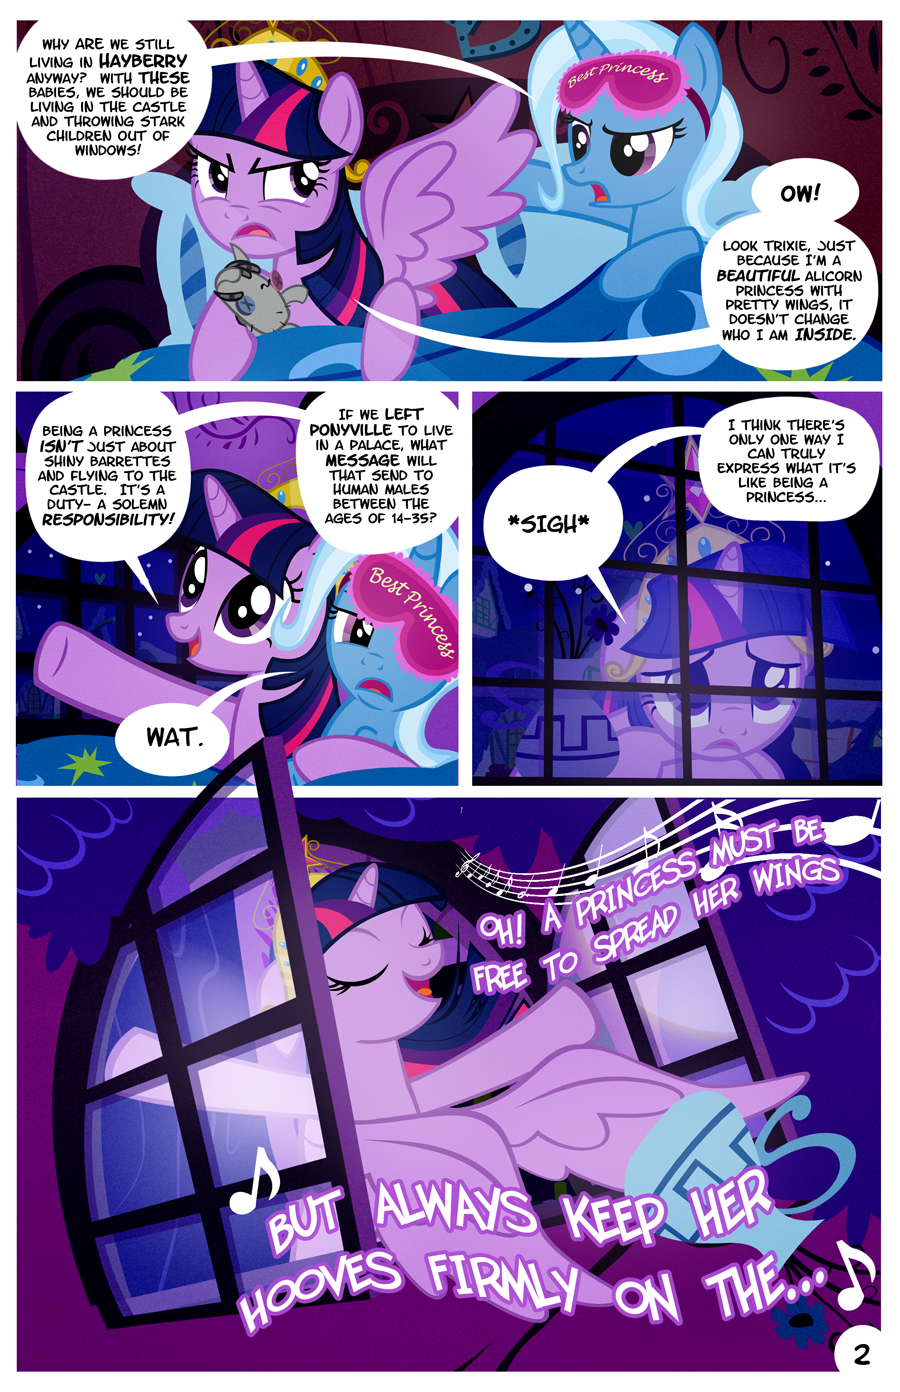 Ponyville Library After Dark Page 2